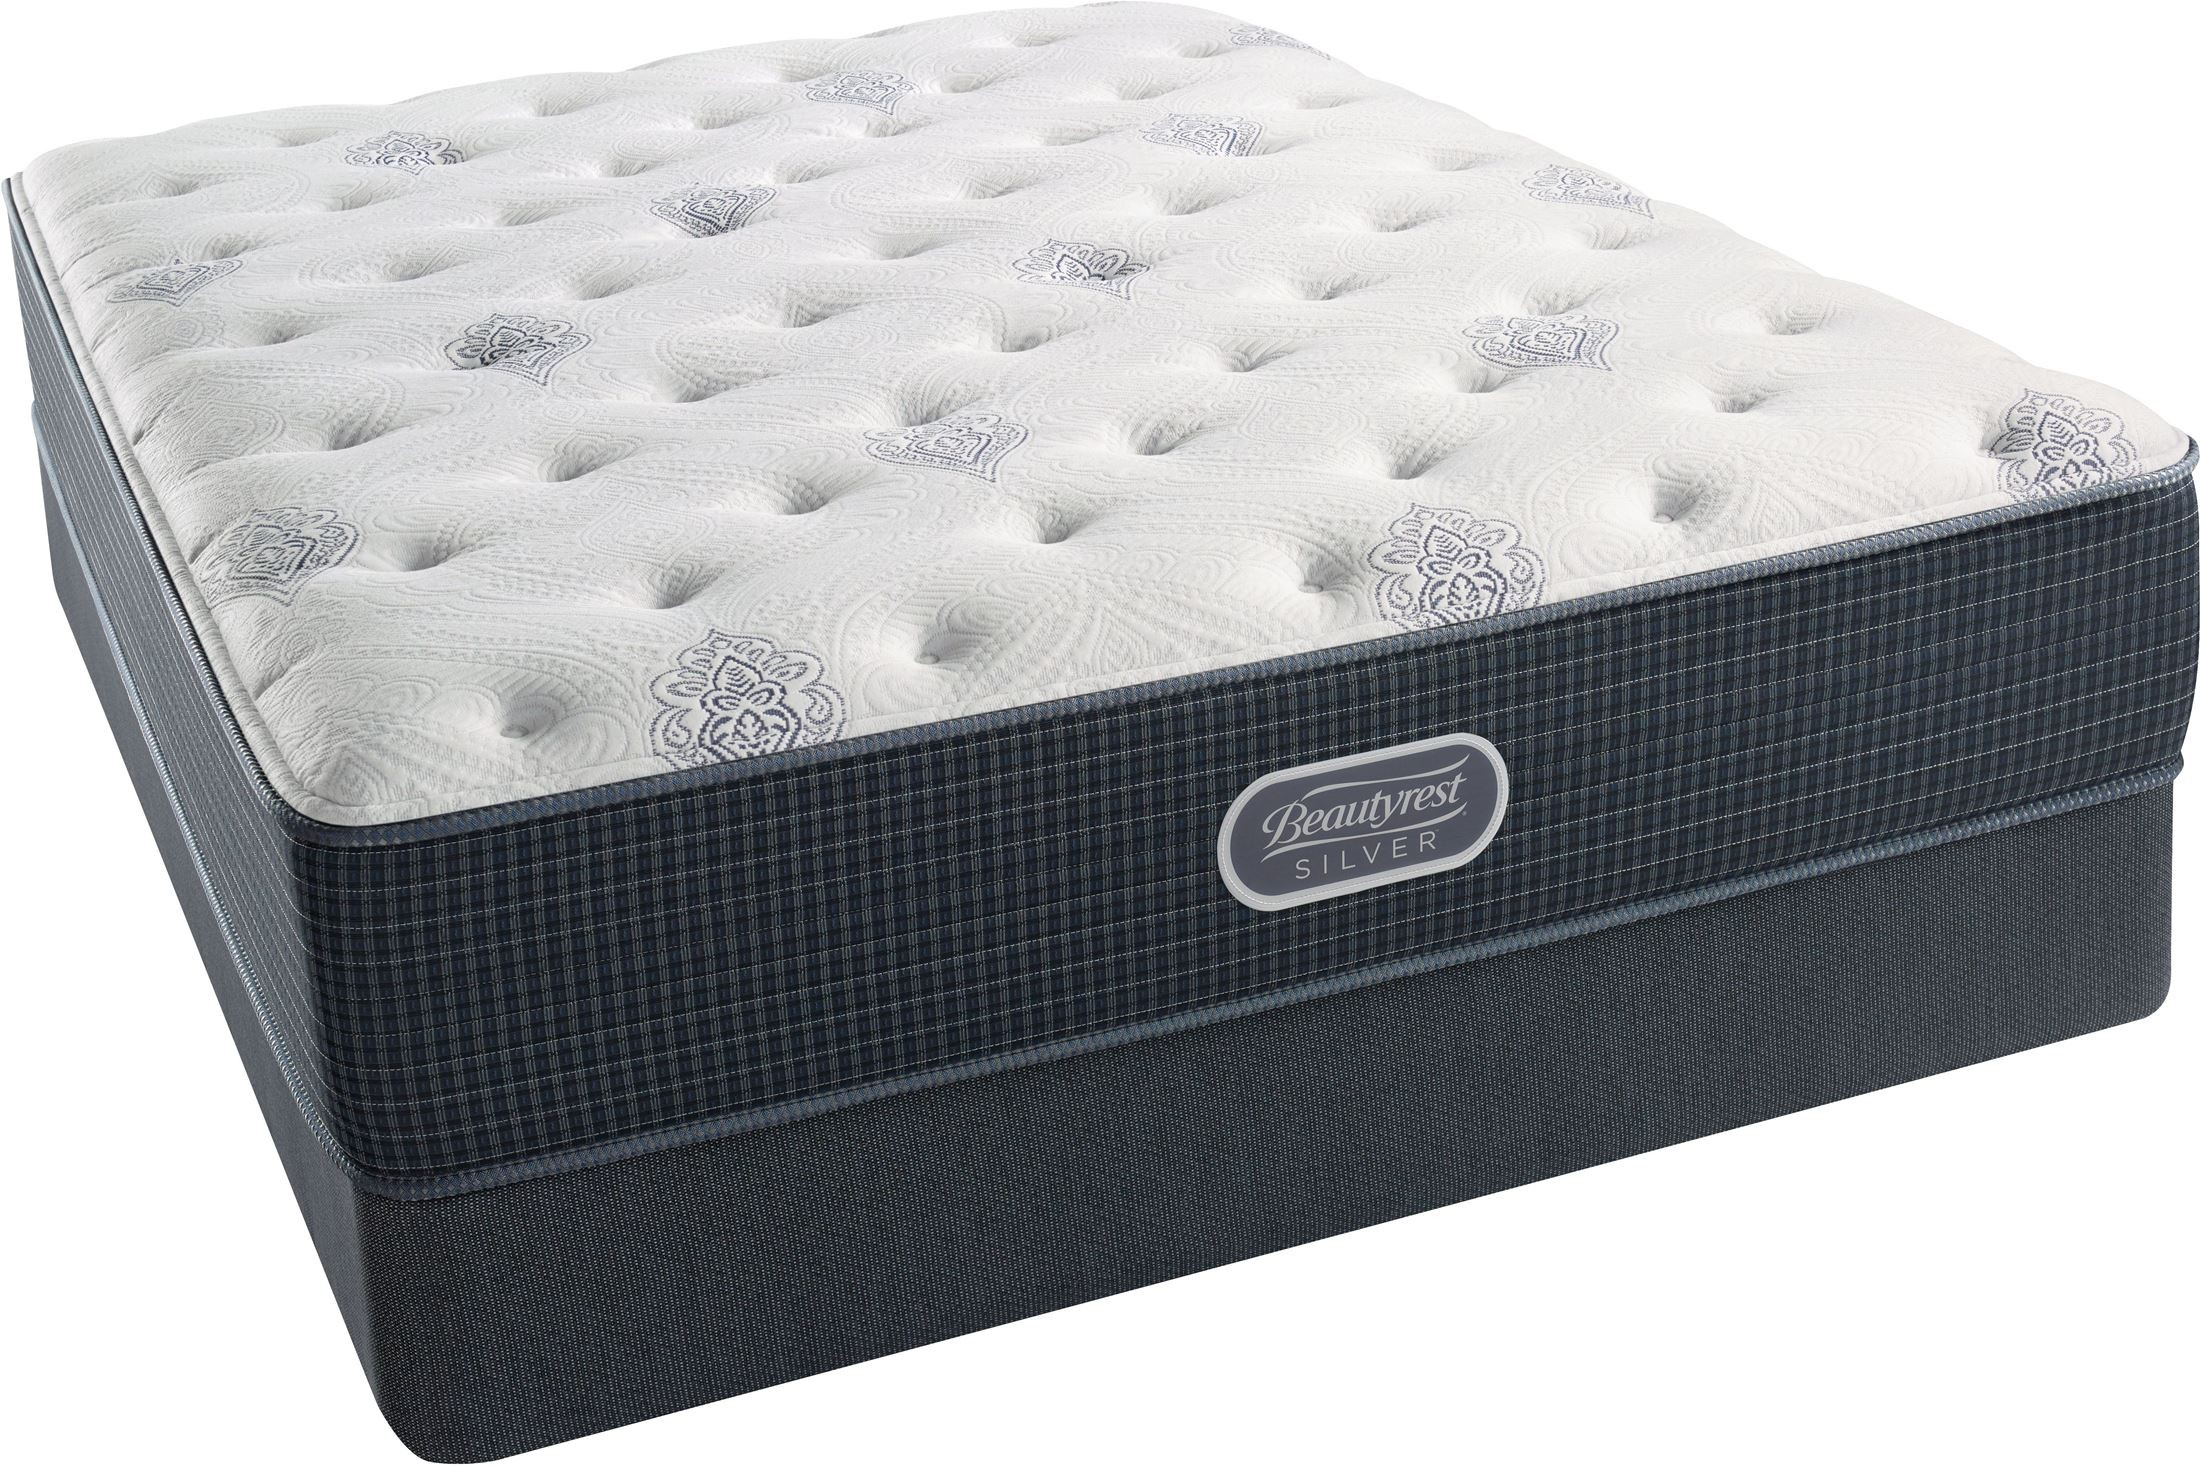 Beautyrest Recharge Silver Offshore Tight Top Luxury Firm